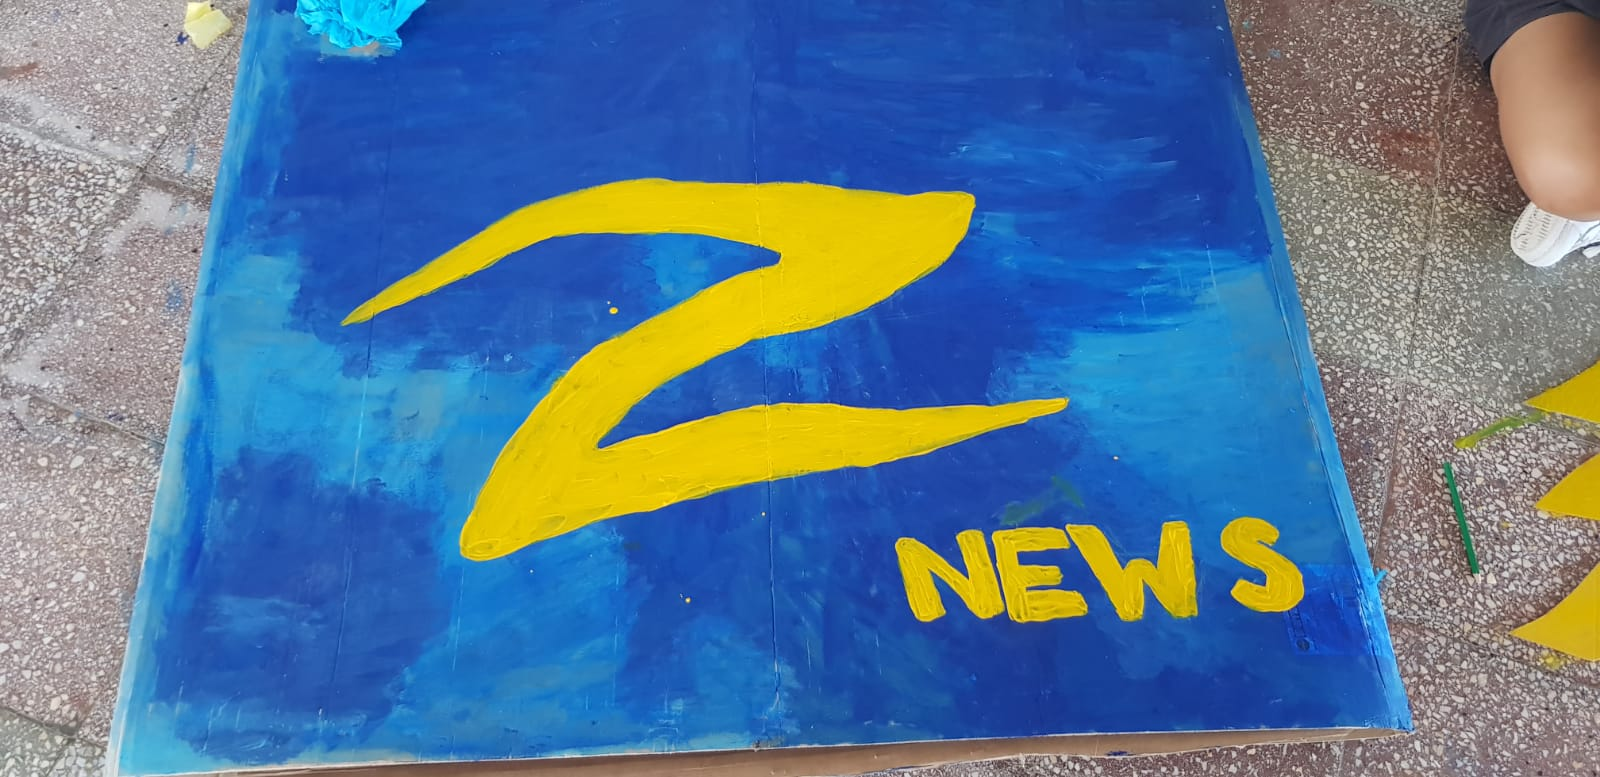 Z camp, Day 20 - Arts and Crafts - Z news logo